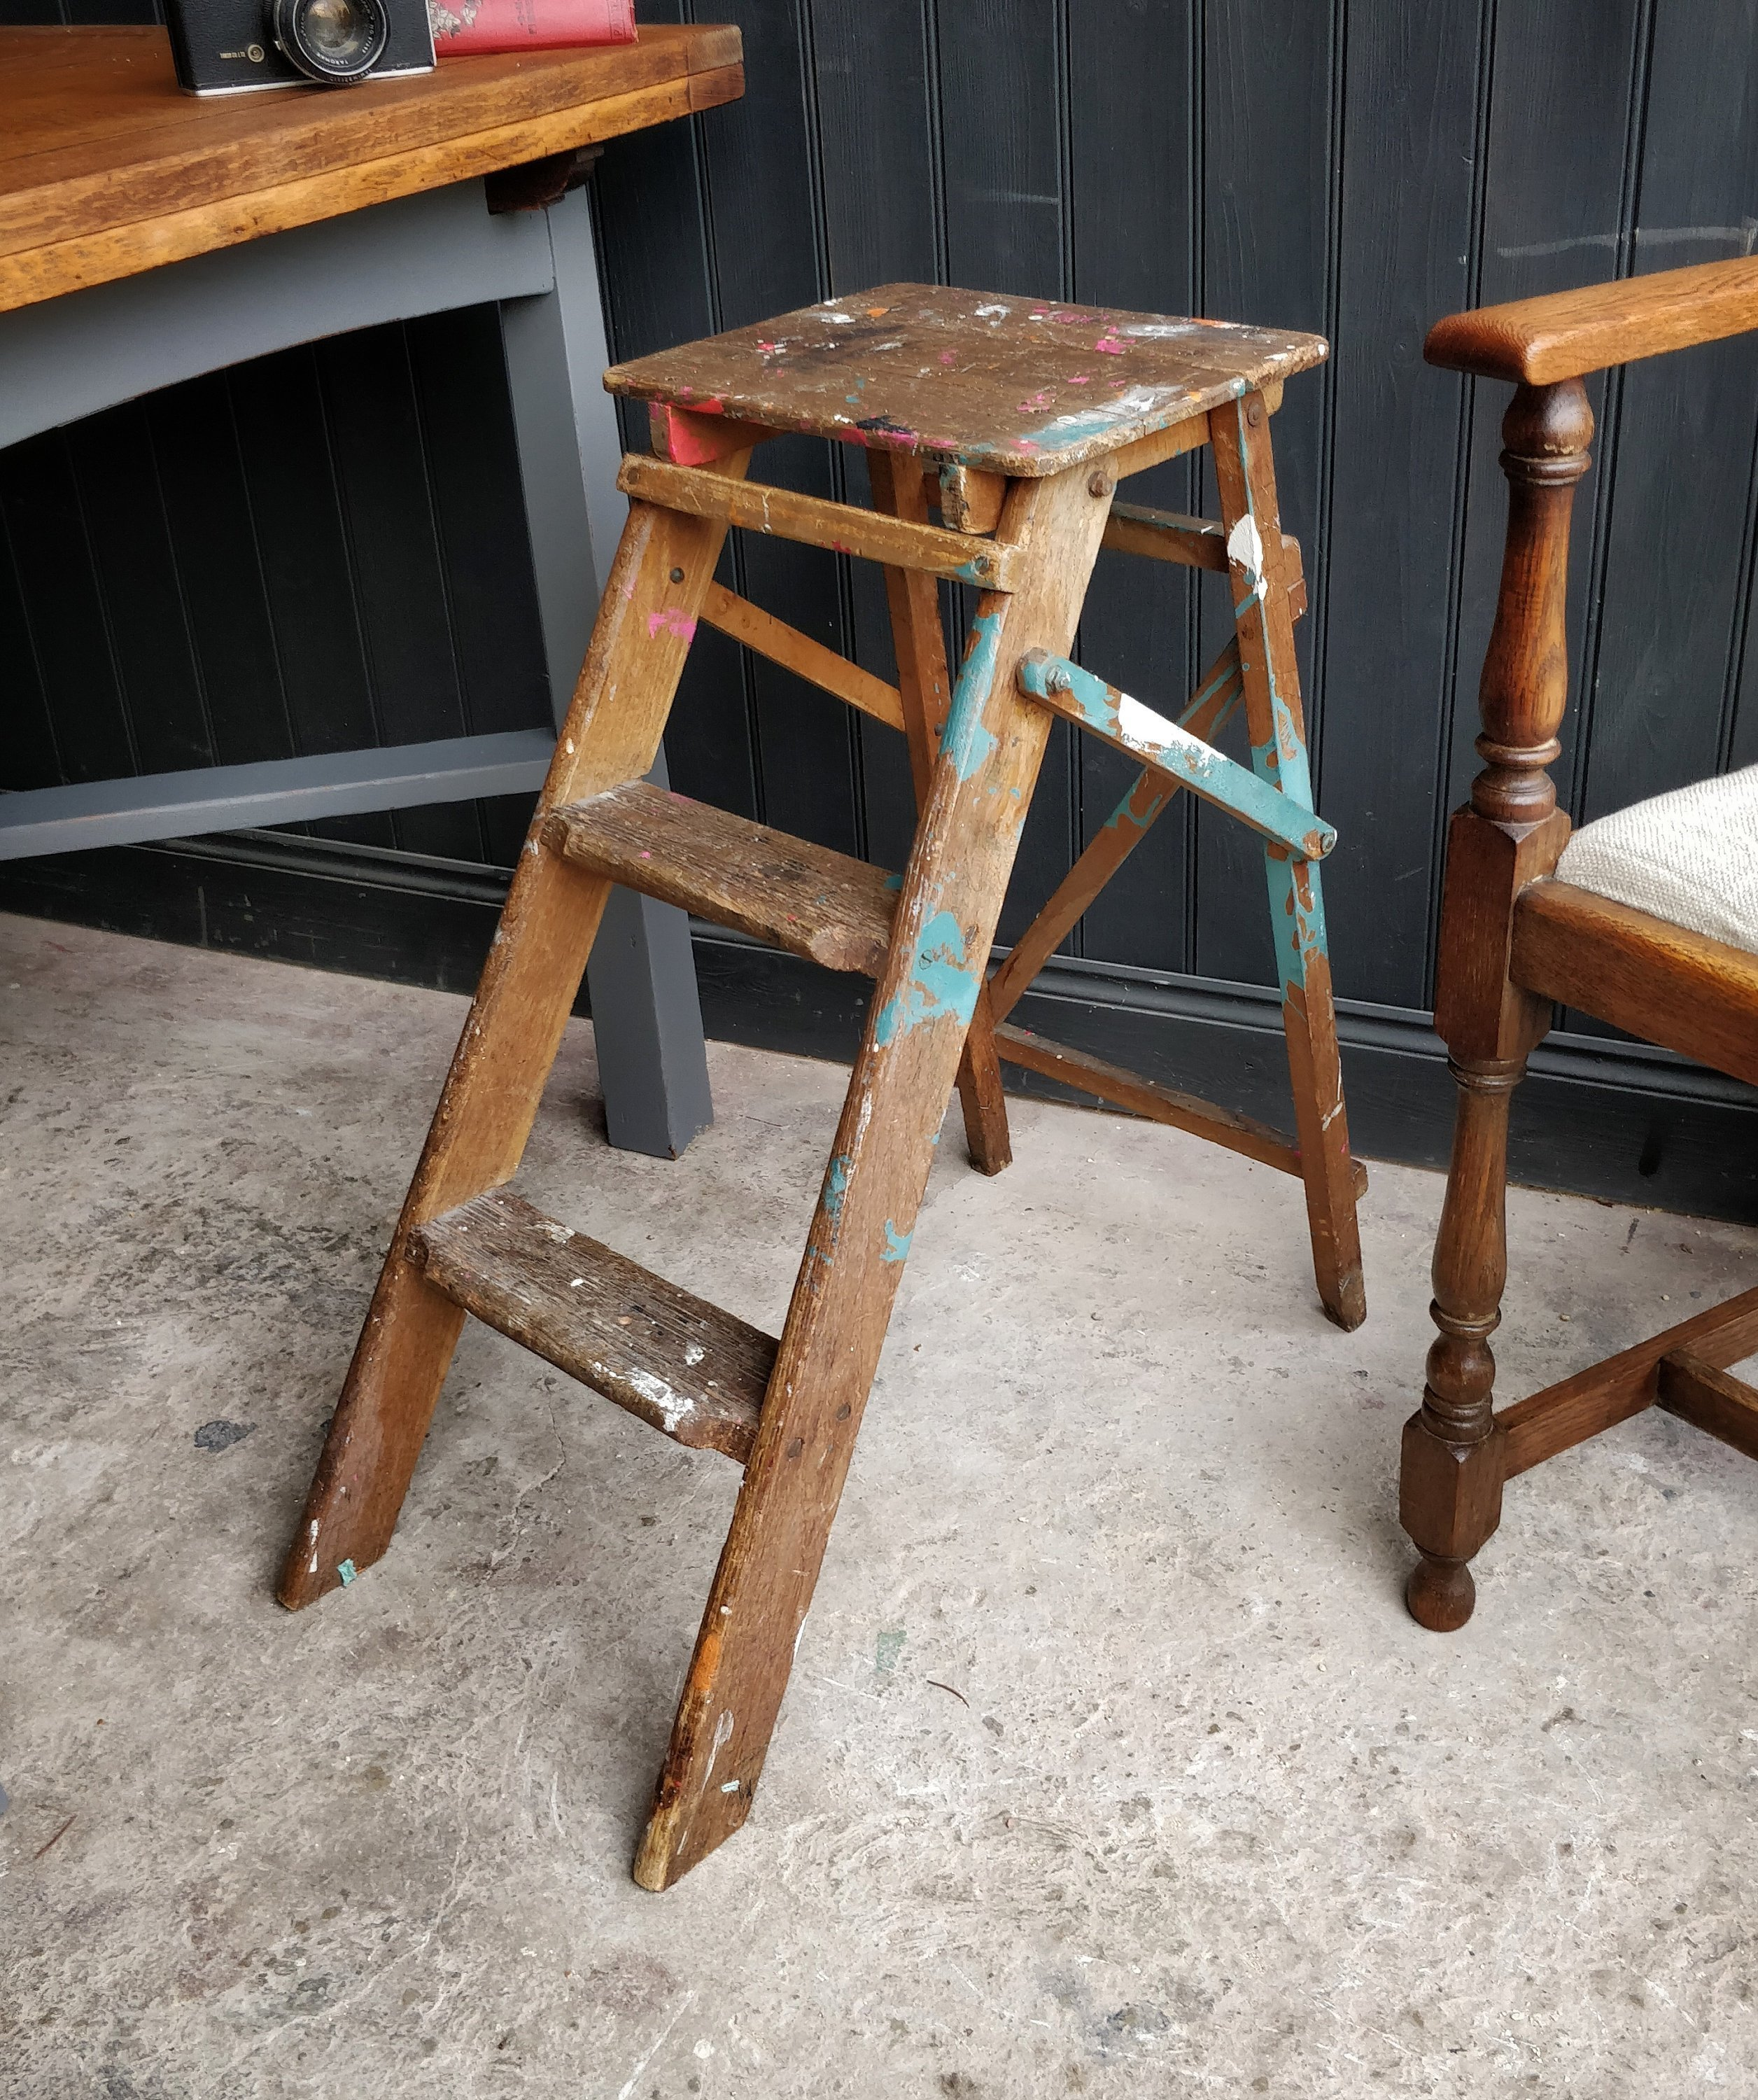 Vintage Step Ladder Rustic Ladder Ladder Display Shop Display Garden Decor Wooden Ladder Ladder Shelves Vinterior